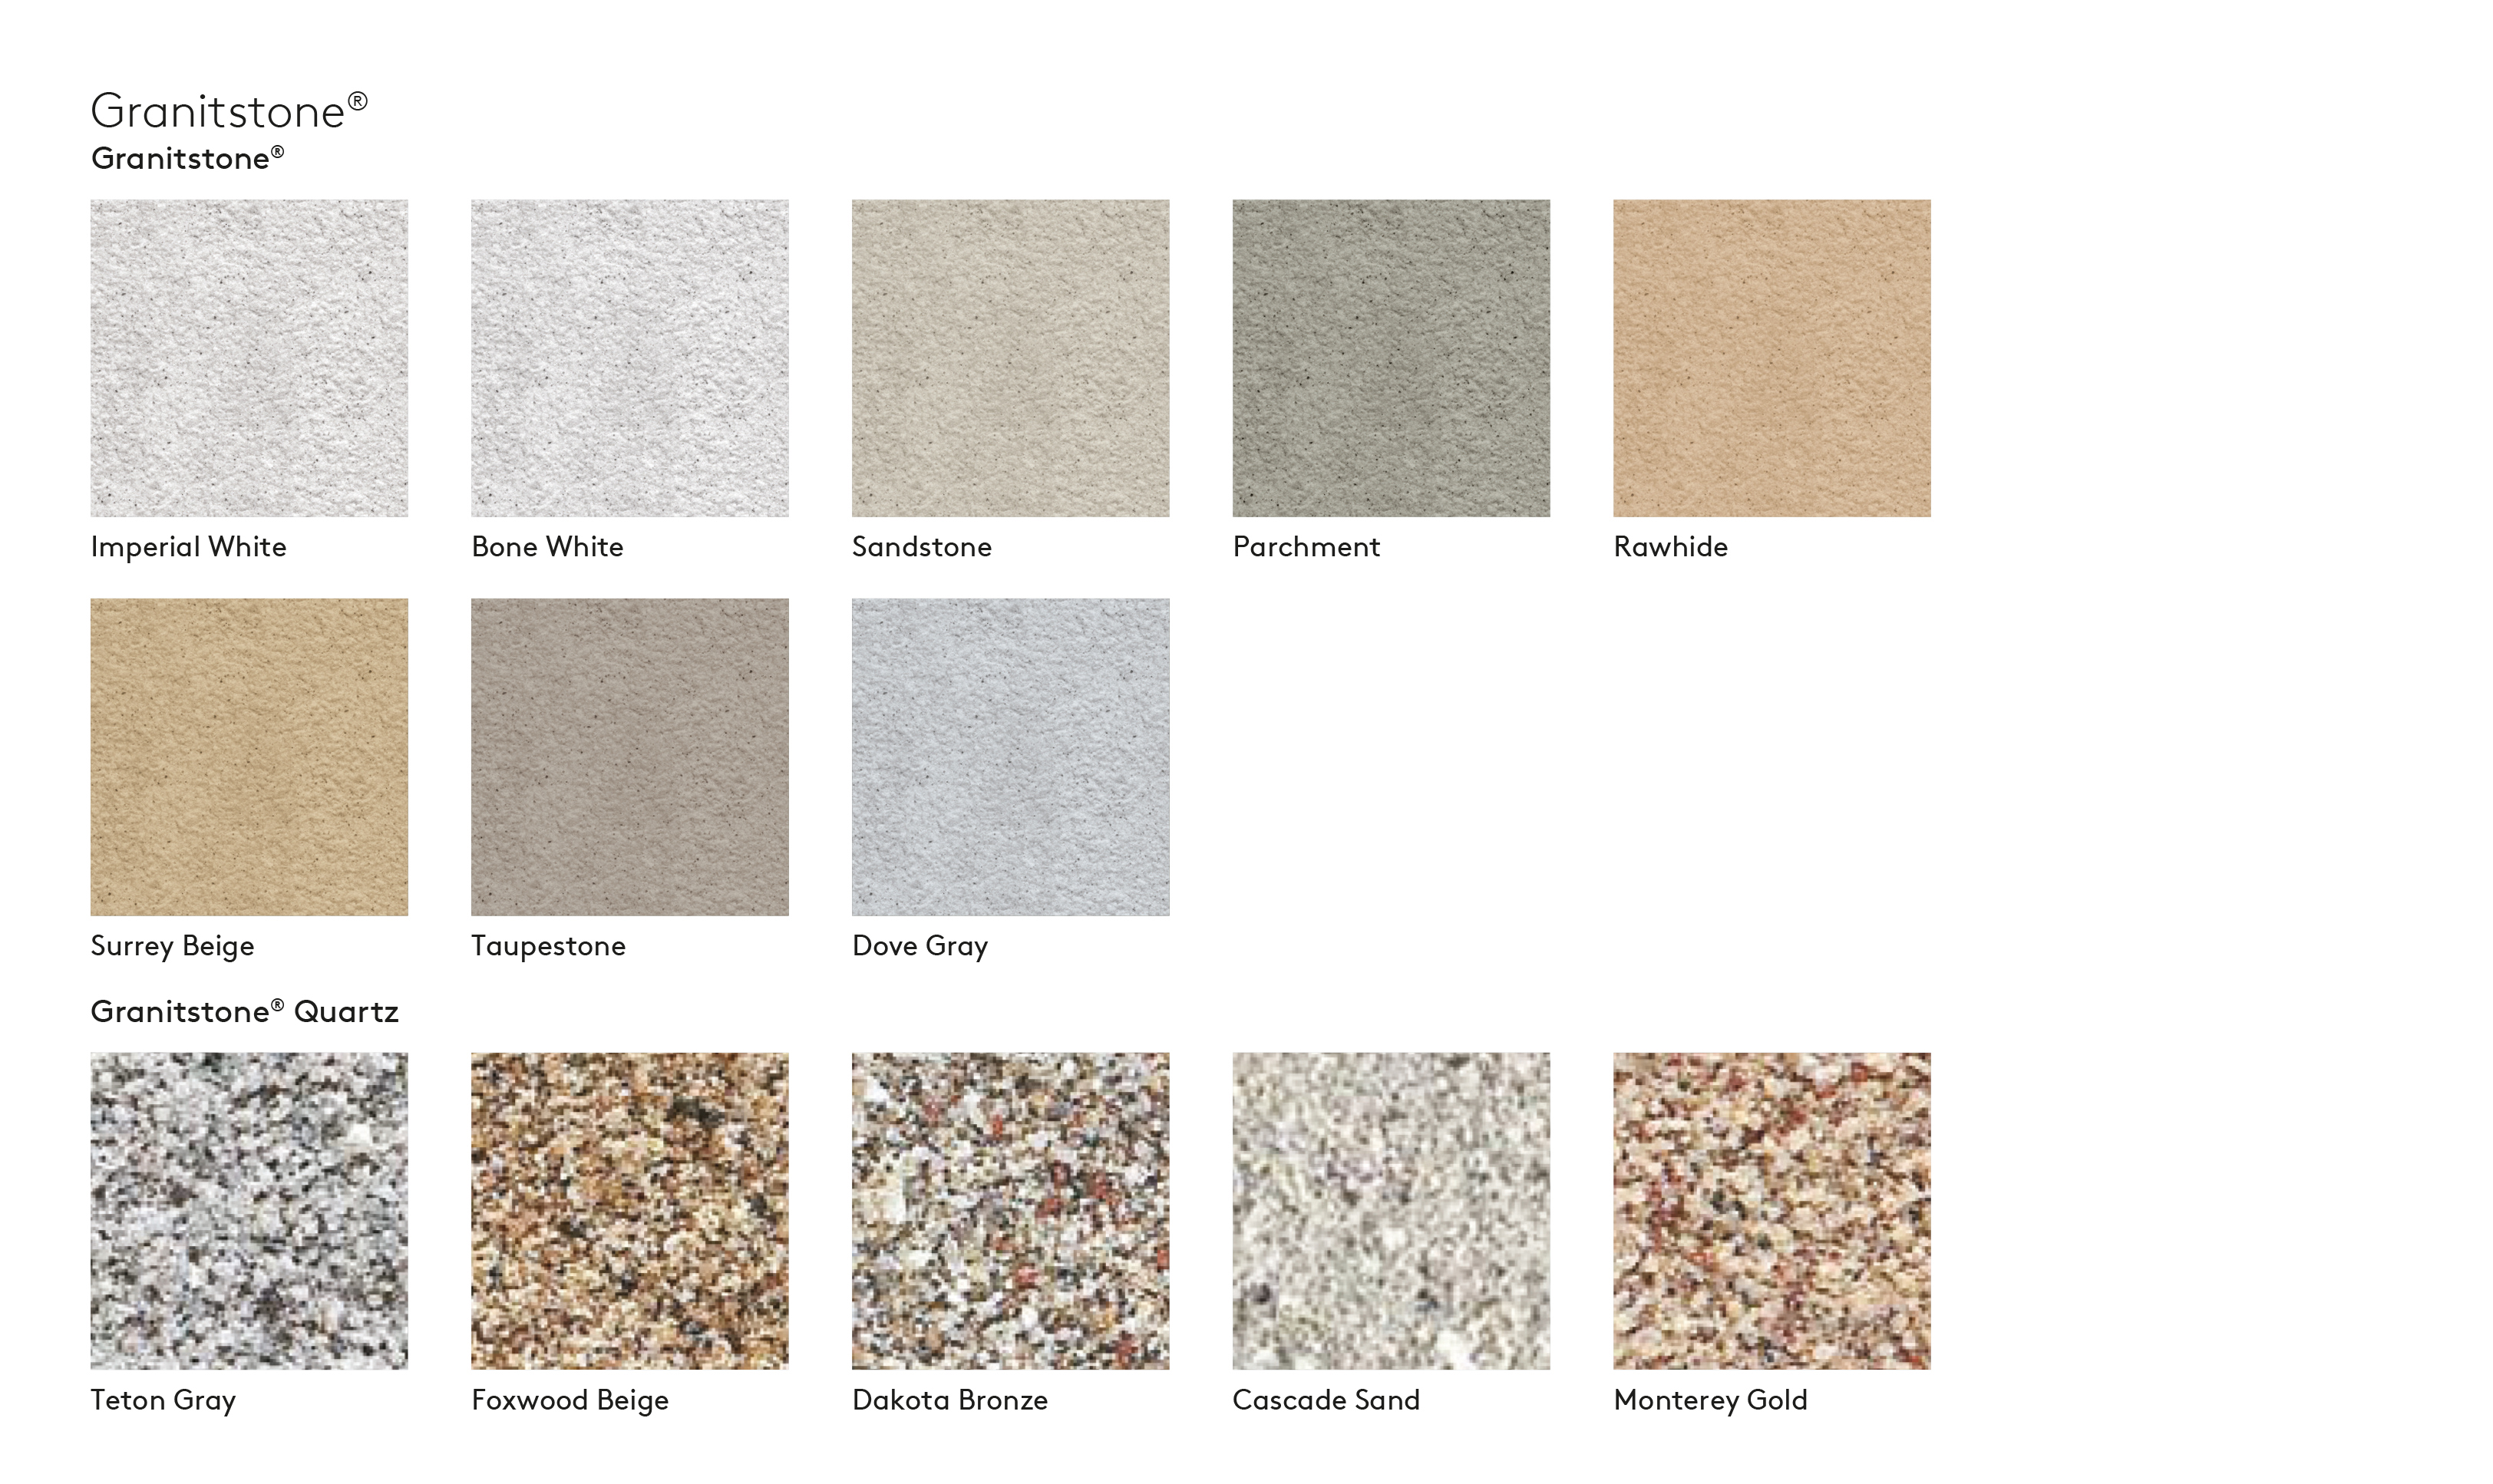 Insulated_wall_systems_granitstone_colors